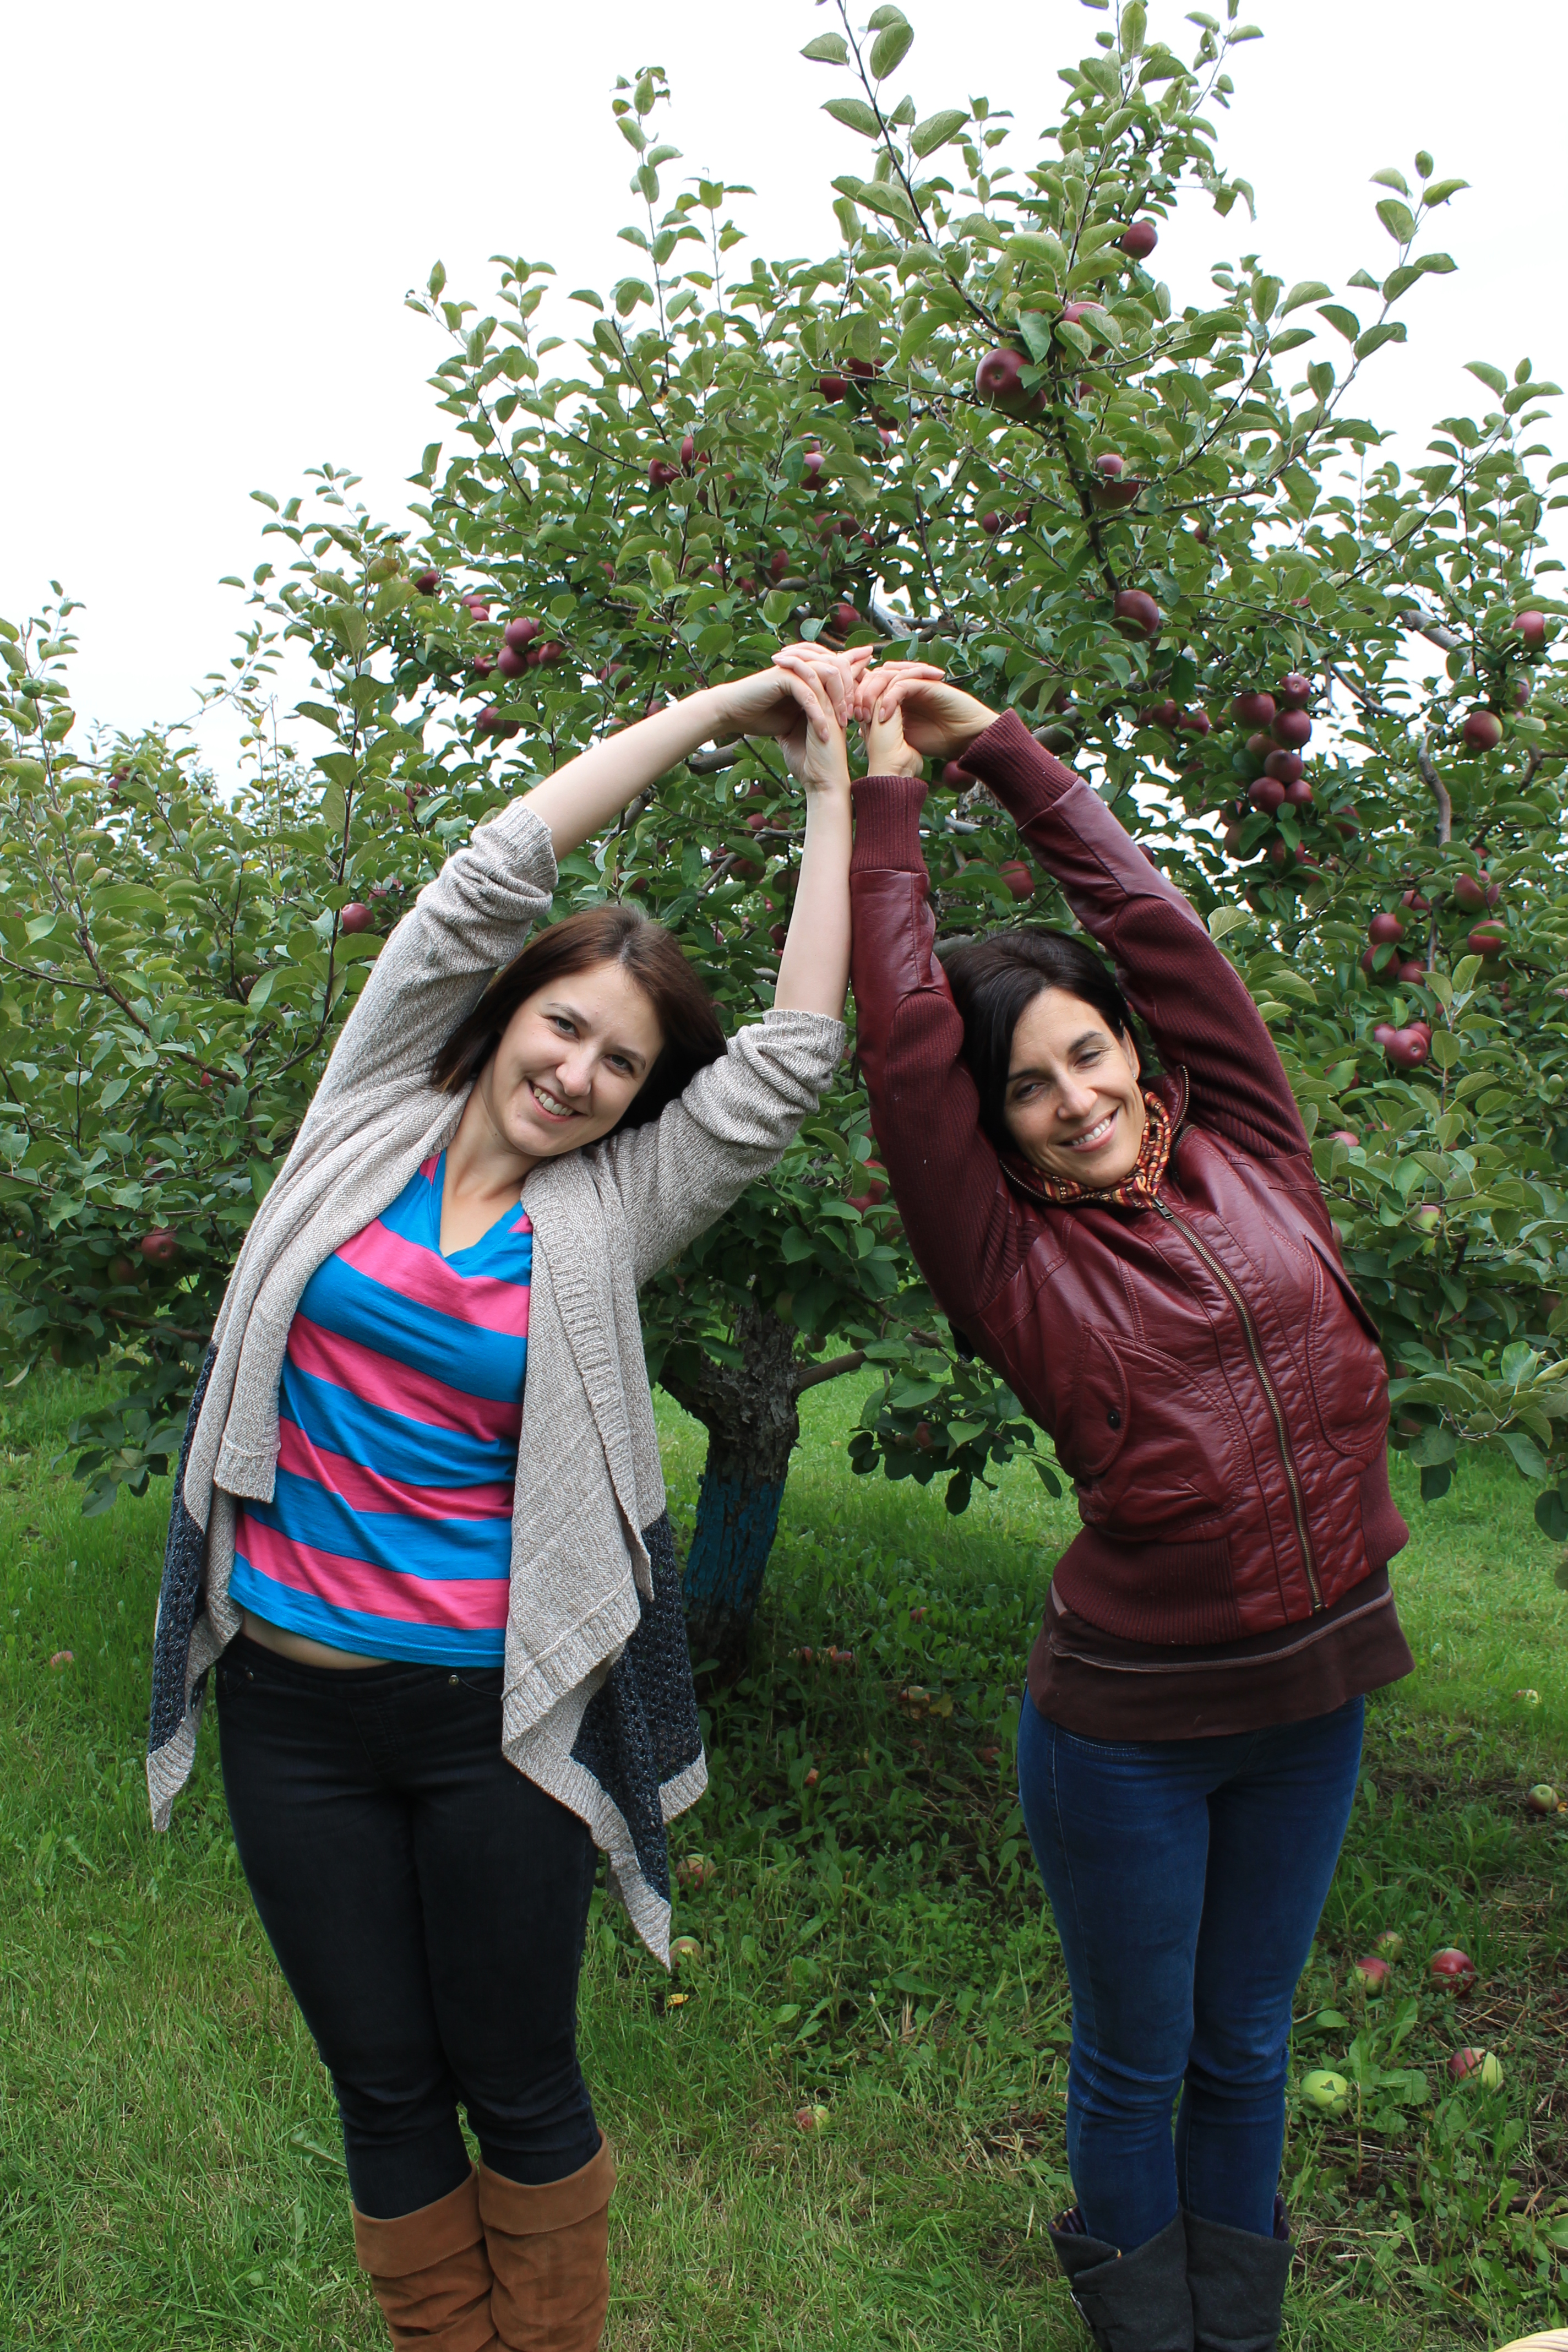 Pose with apples photo